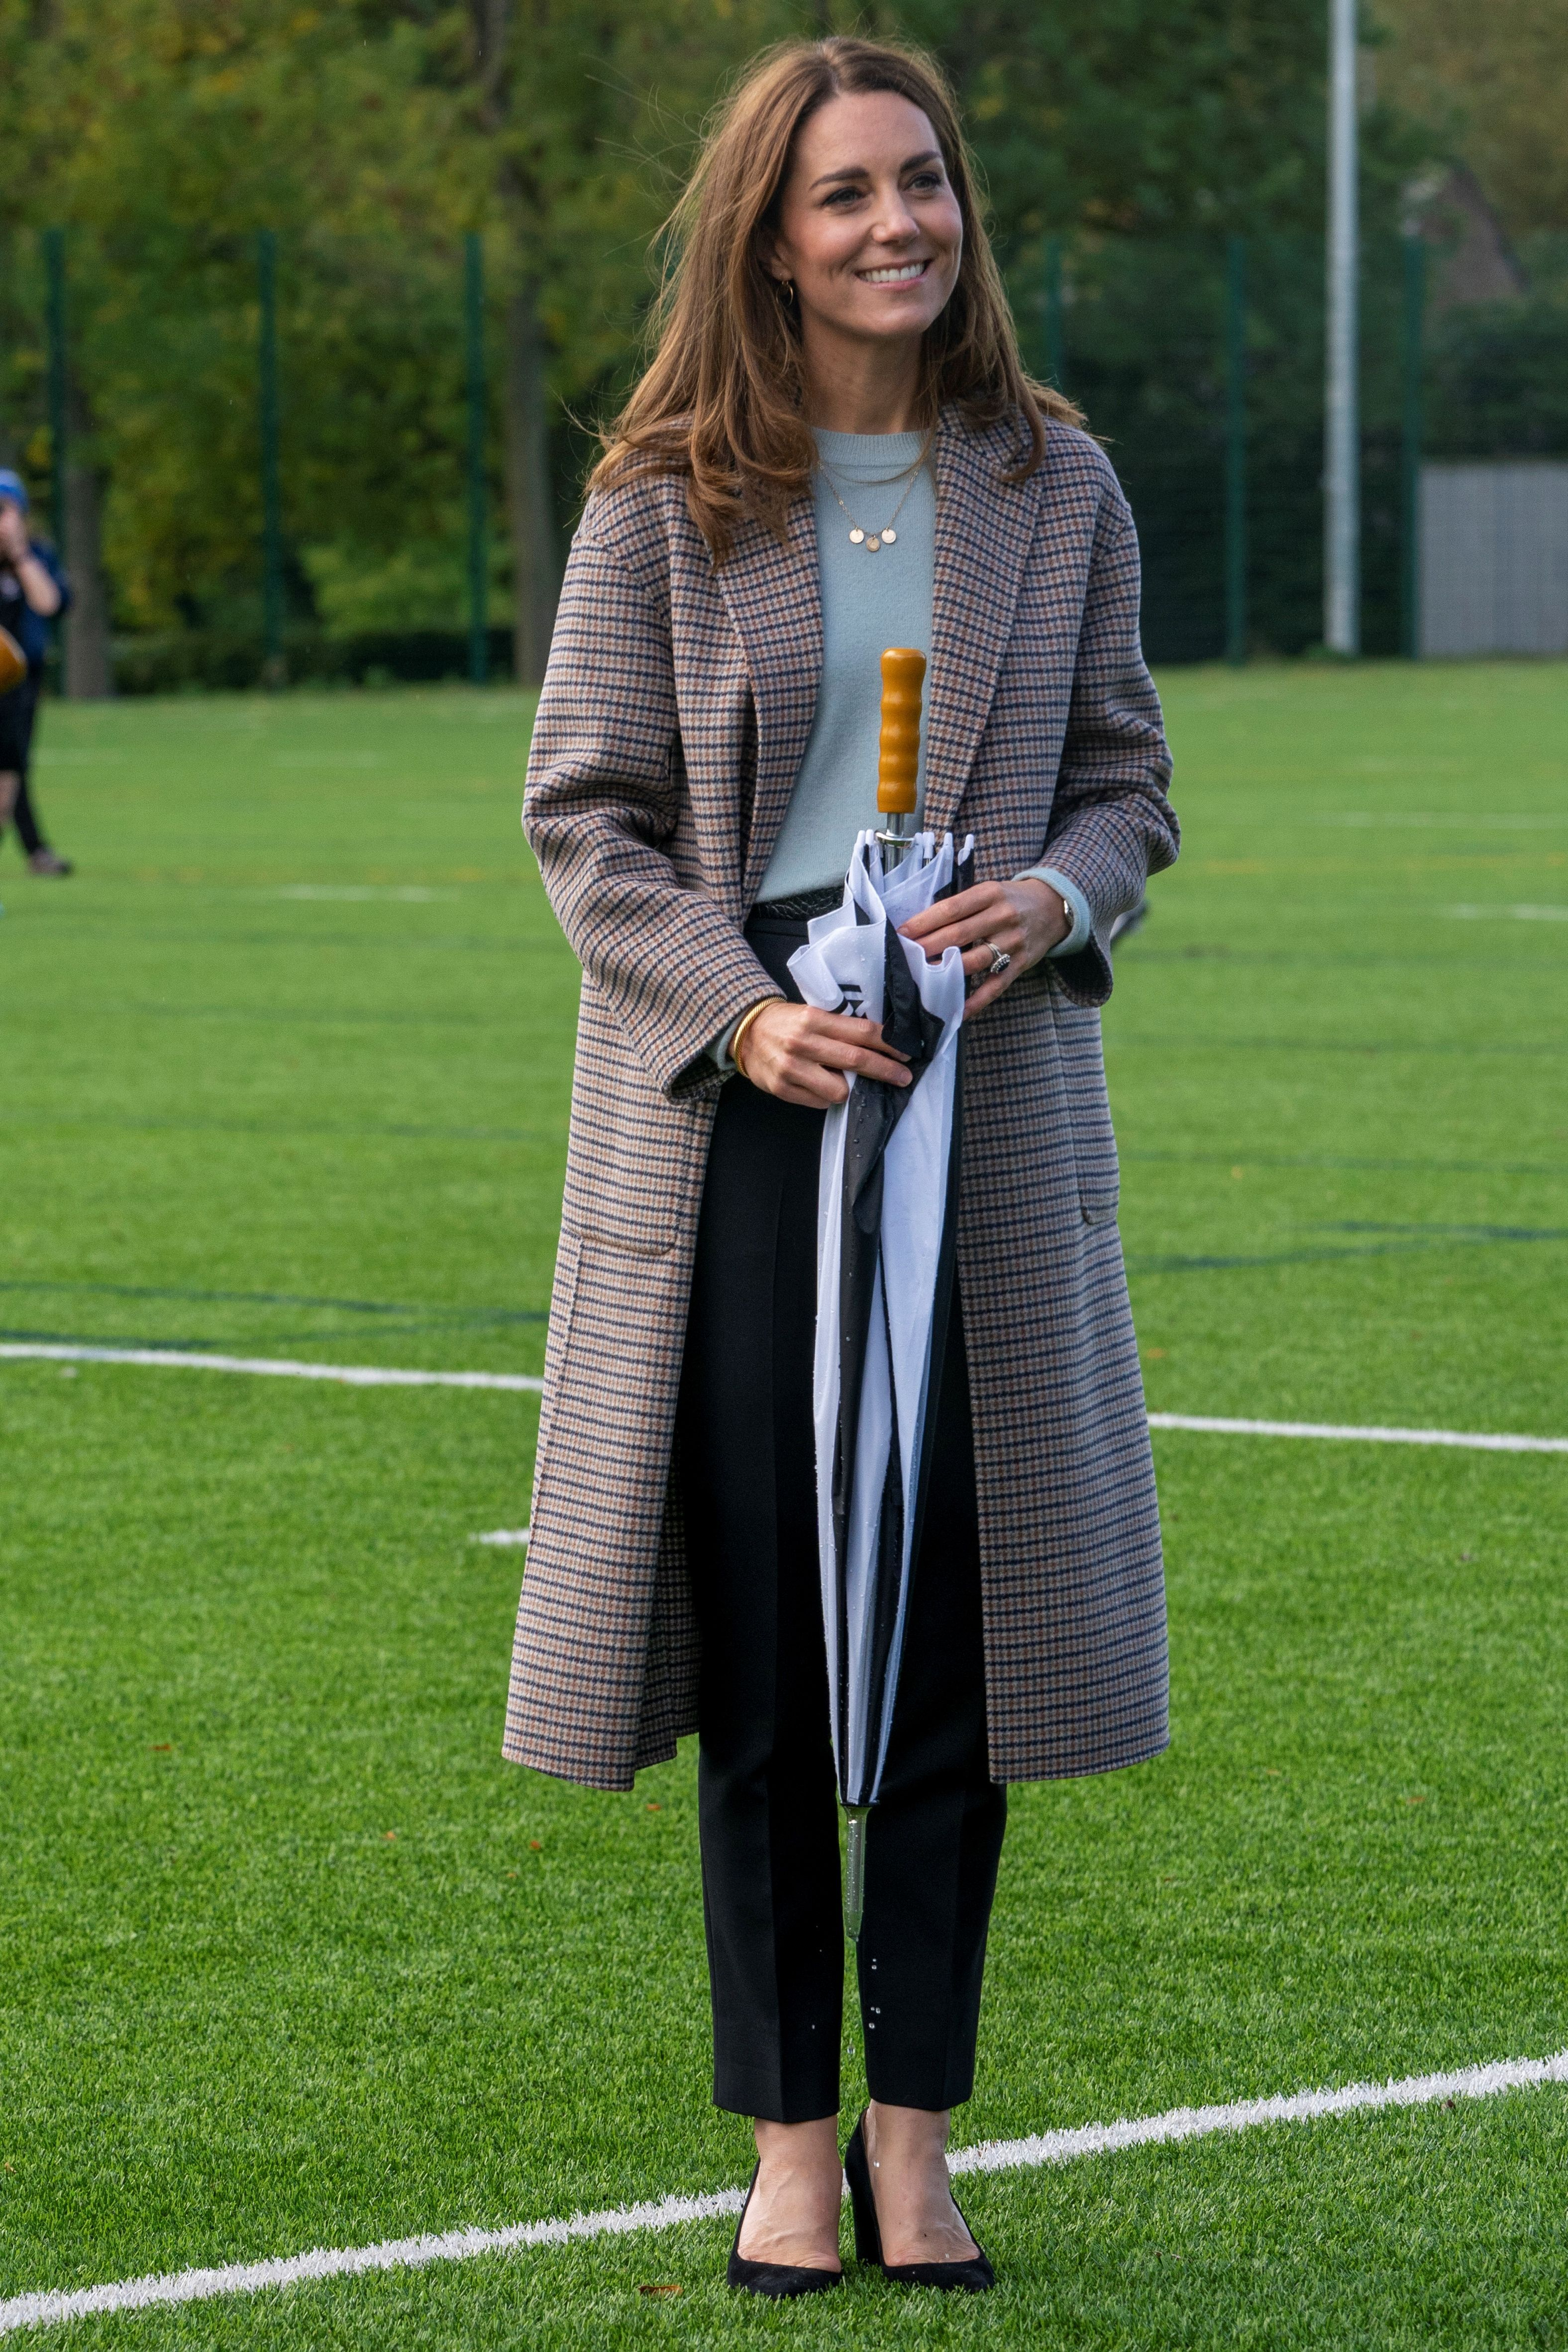 Kate Middleton Wears Fall-Appropriate Outfit for University Visit